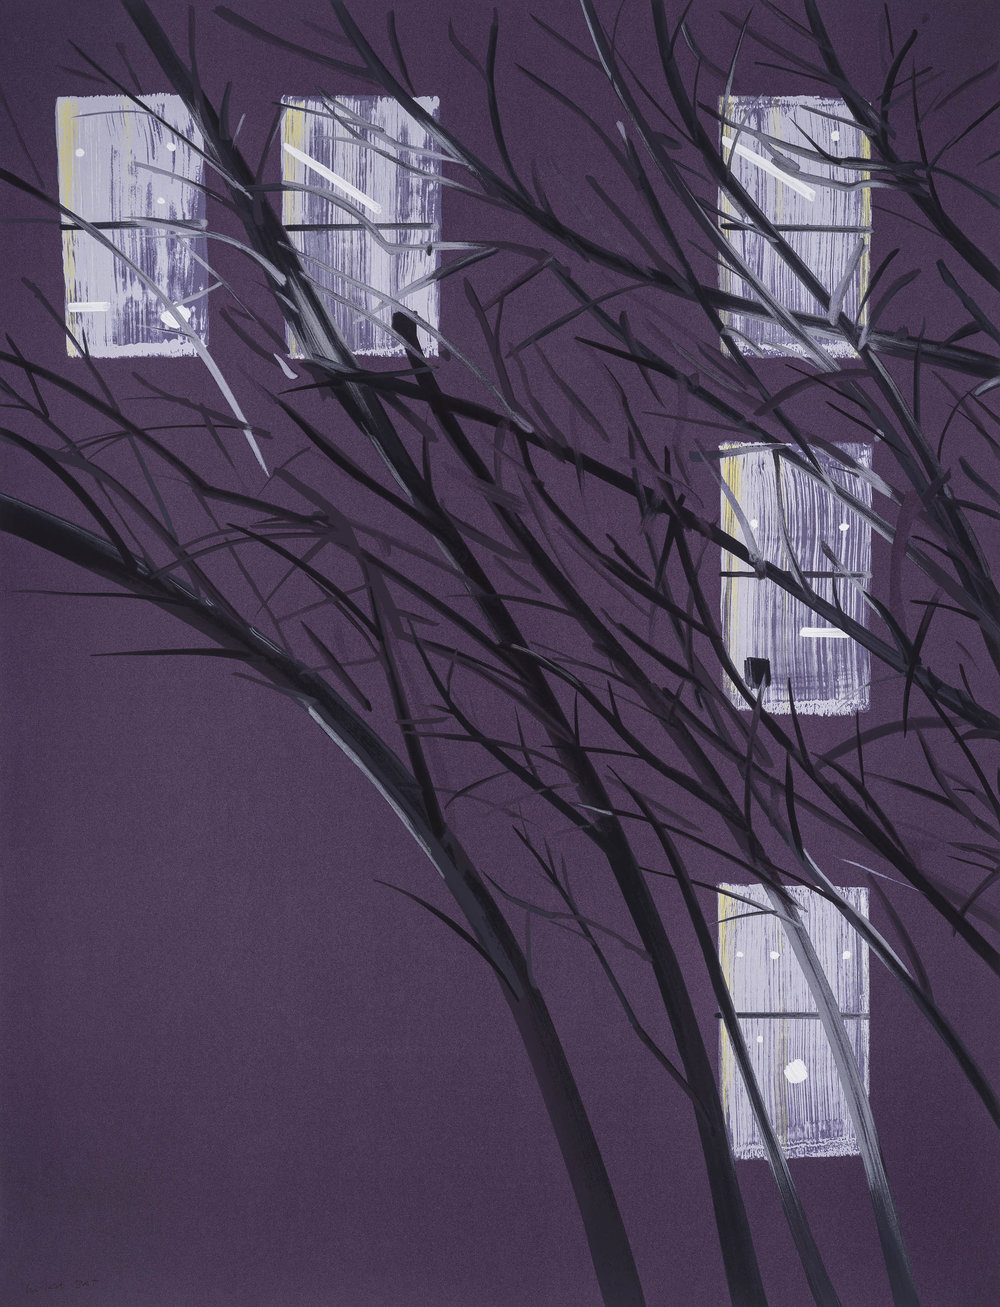 Alex Katz  Purple Wind , 2017 22-color silkscreen on Saunders 425 gsm paper 72 x 55 in. edition of 64